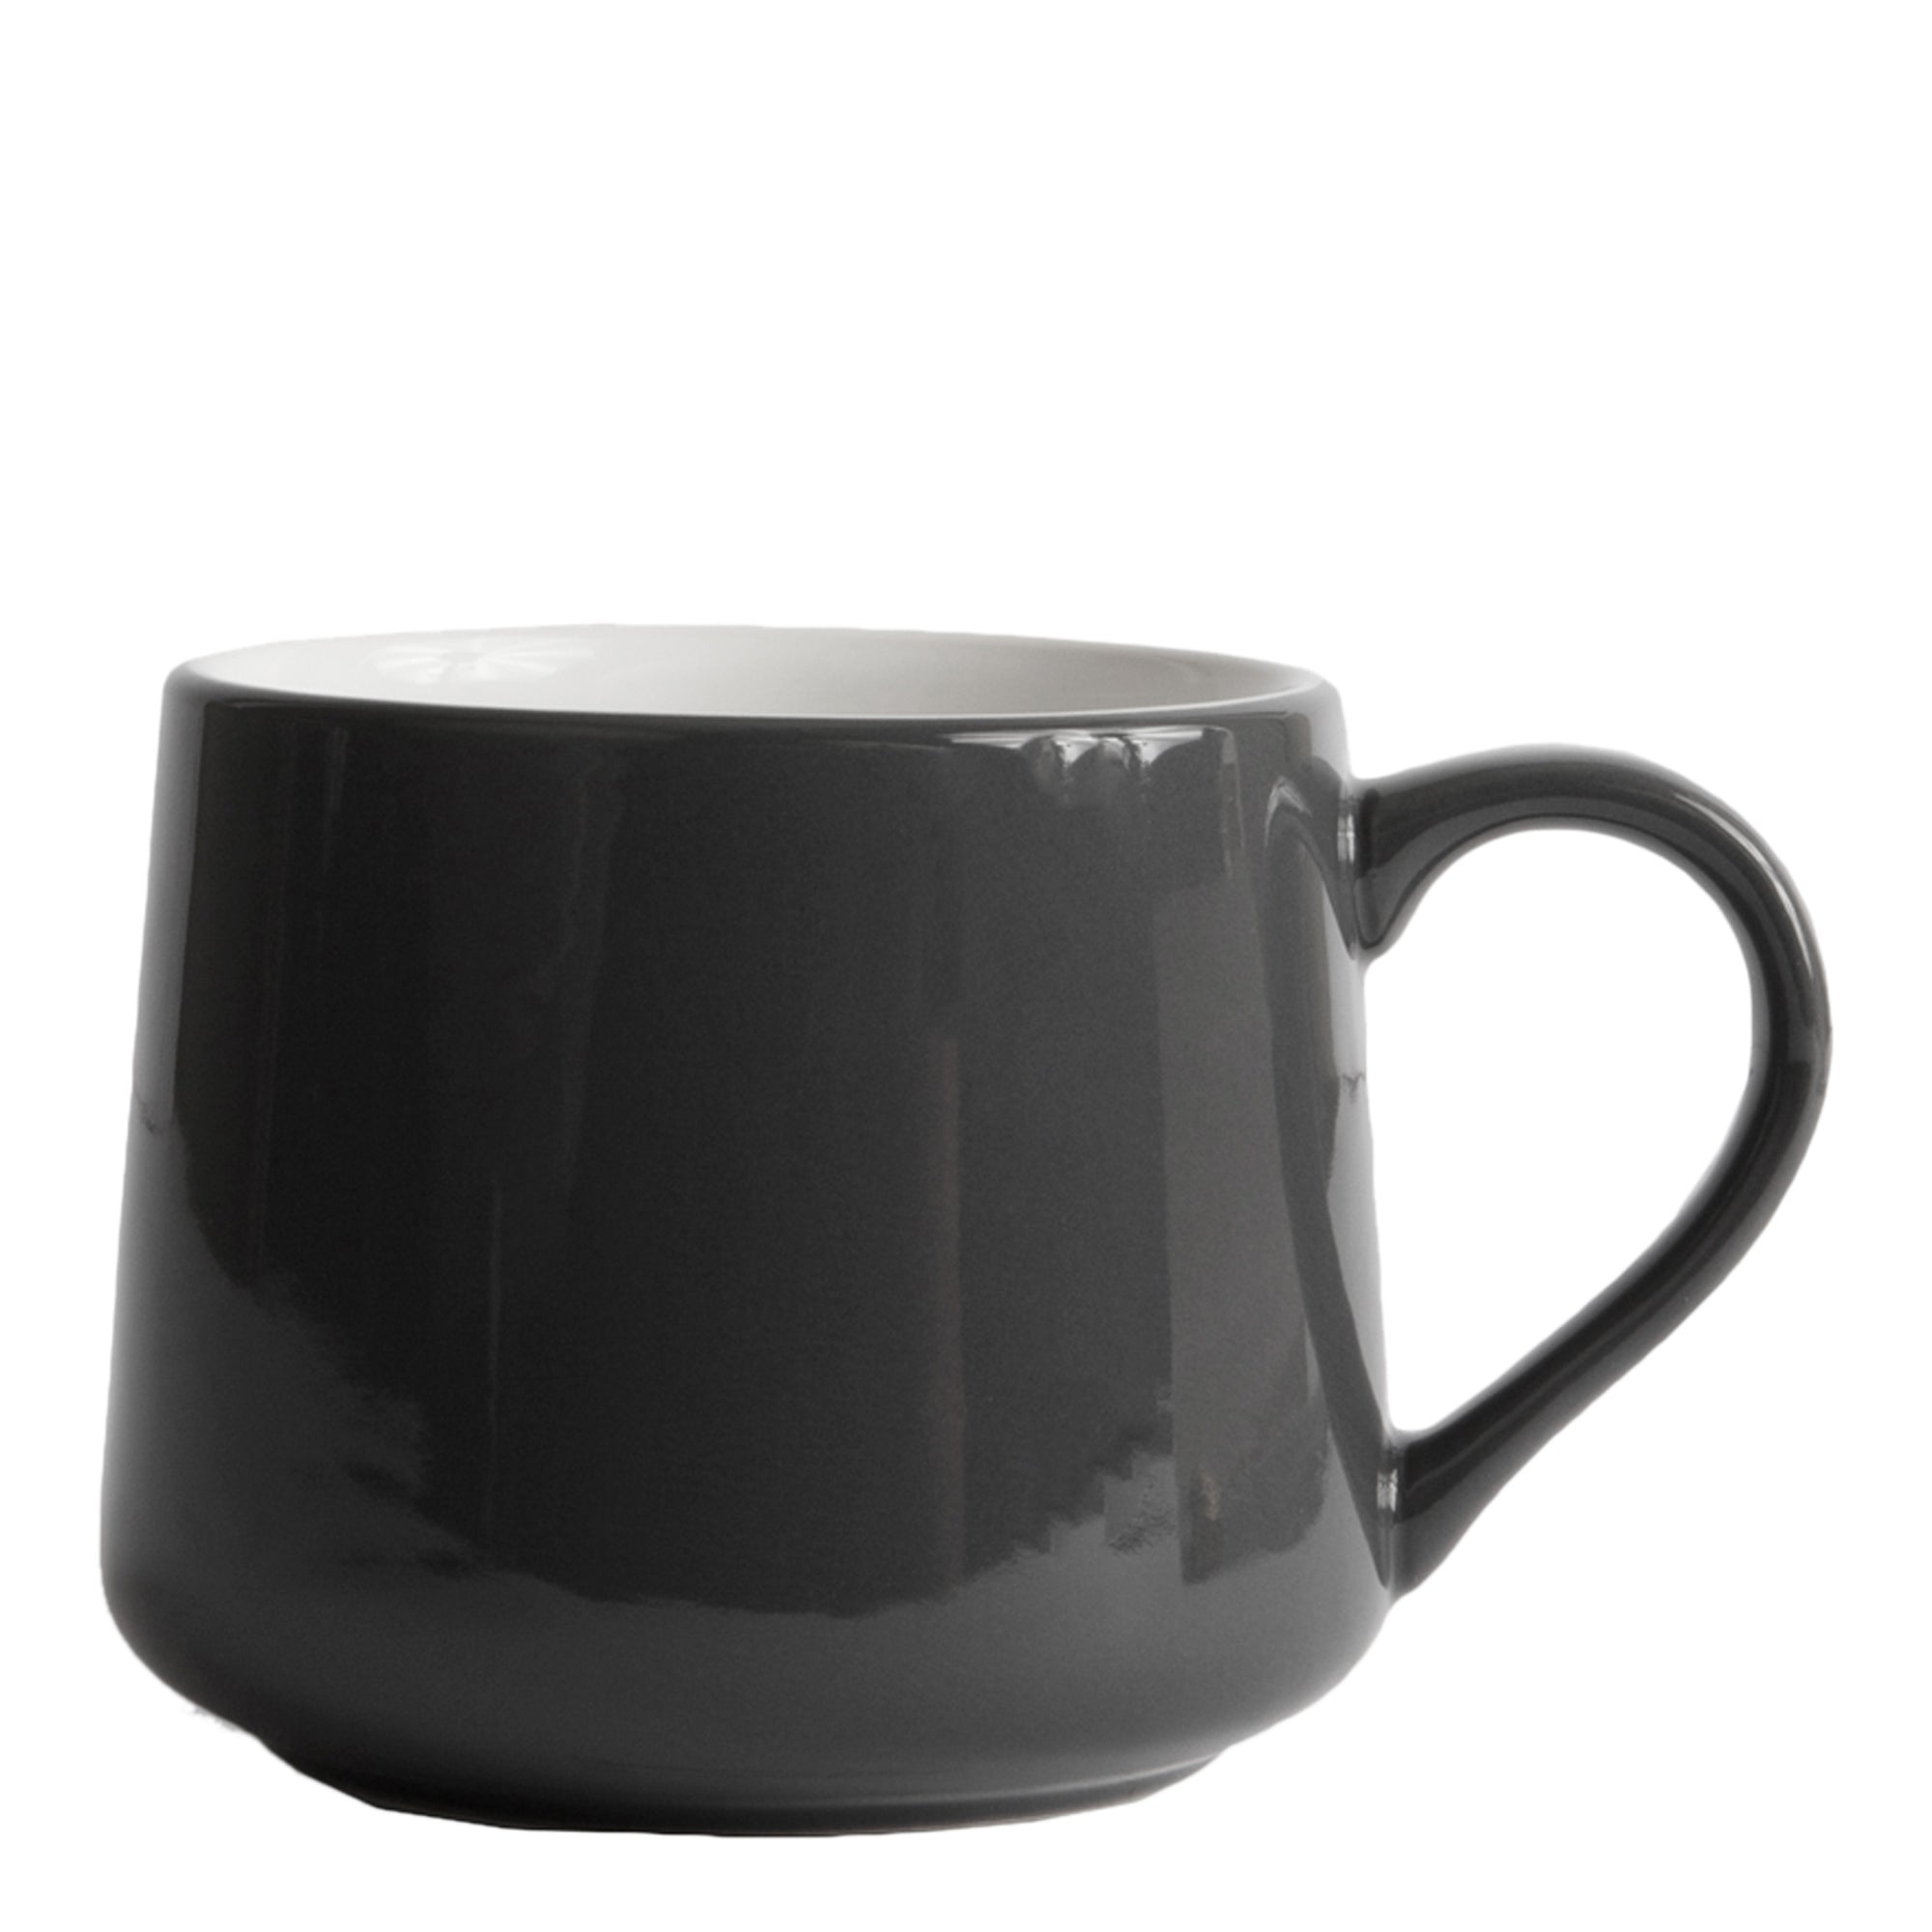 Porcelain Cup - Crescent Mug 12oz/36cl Created Co - Espresso Gear